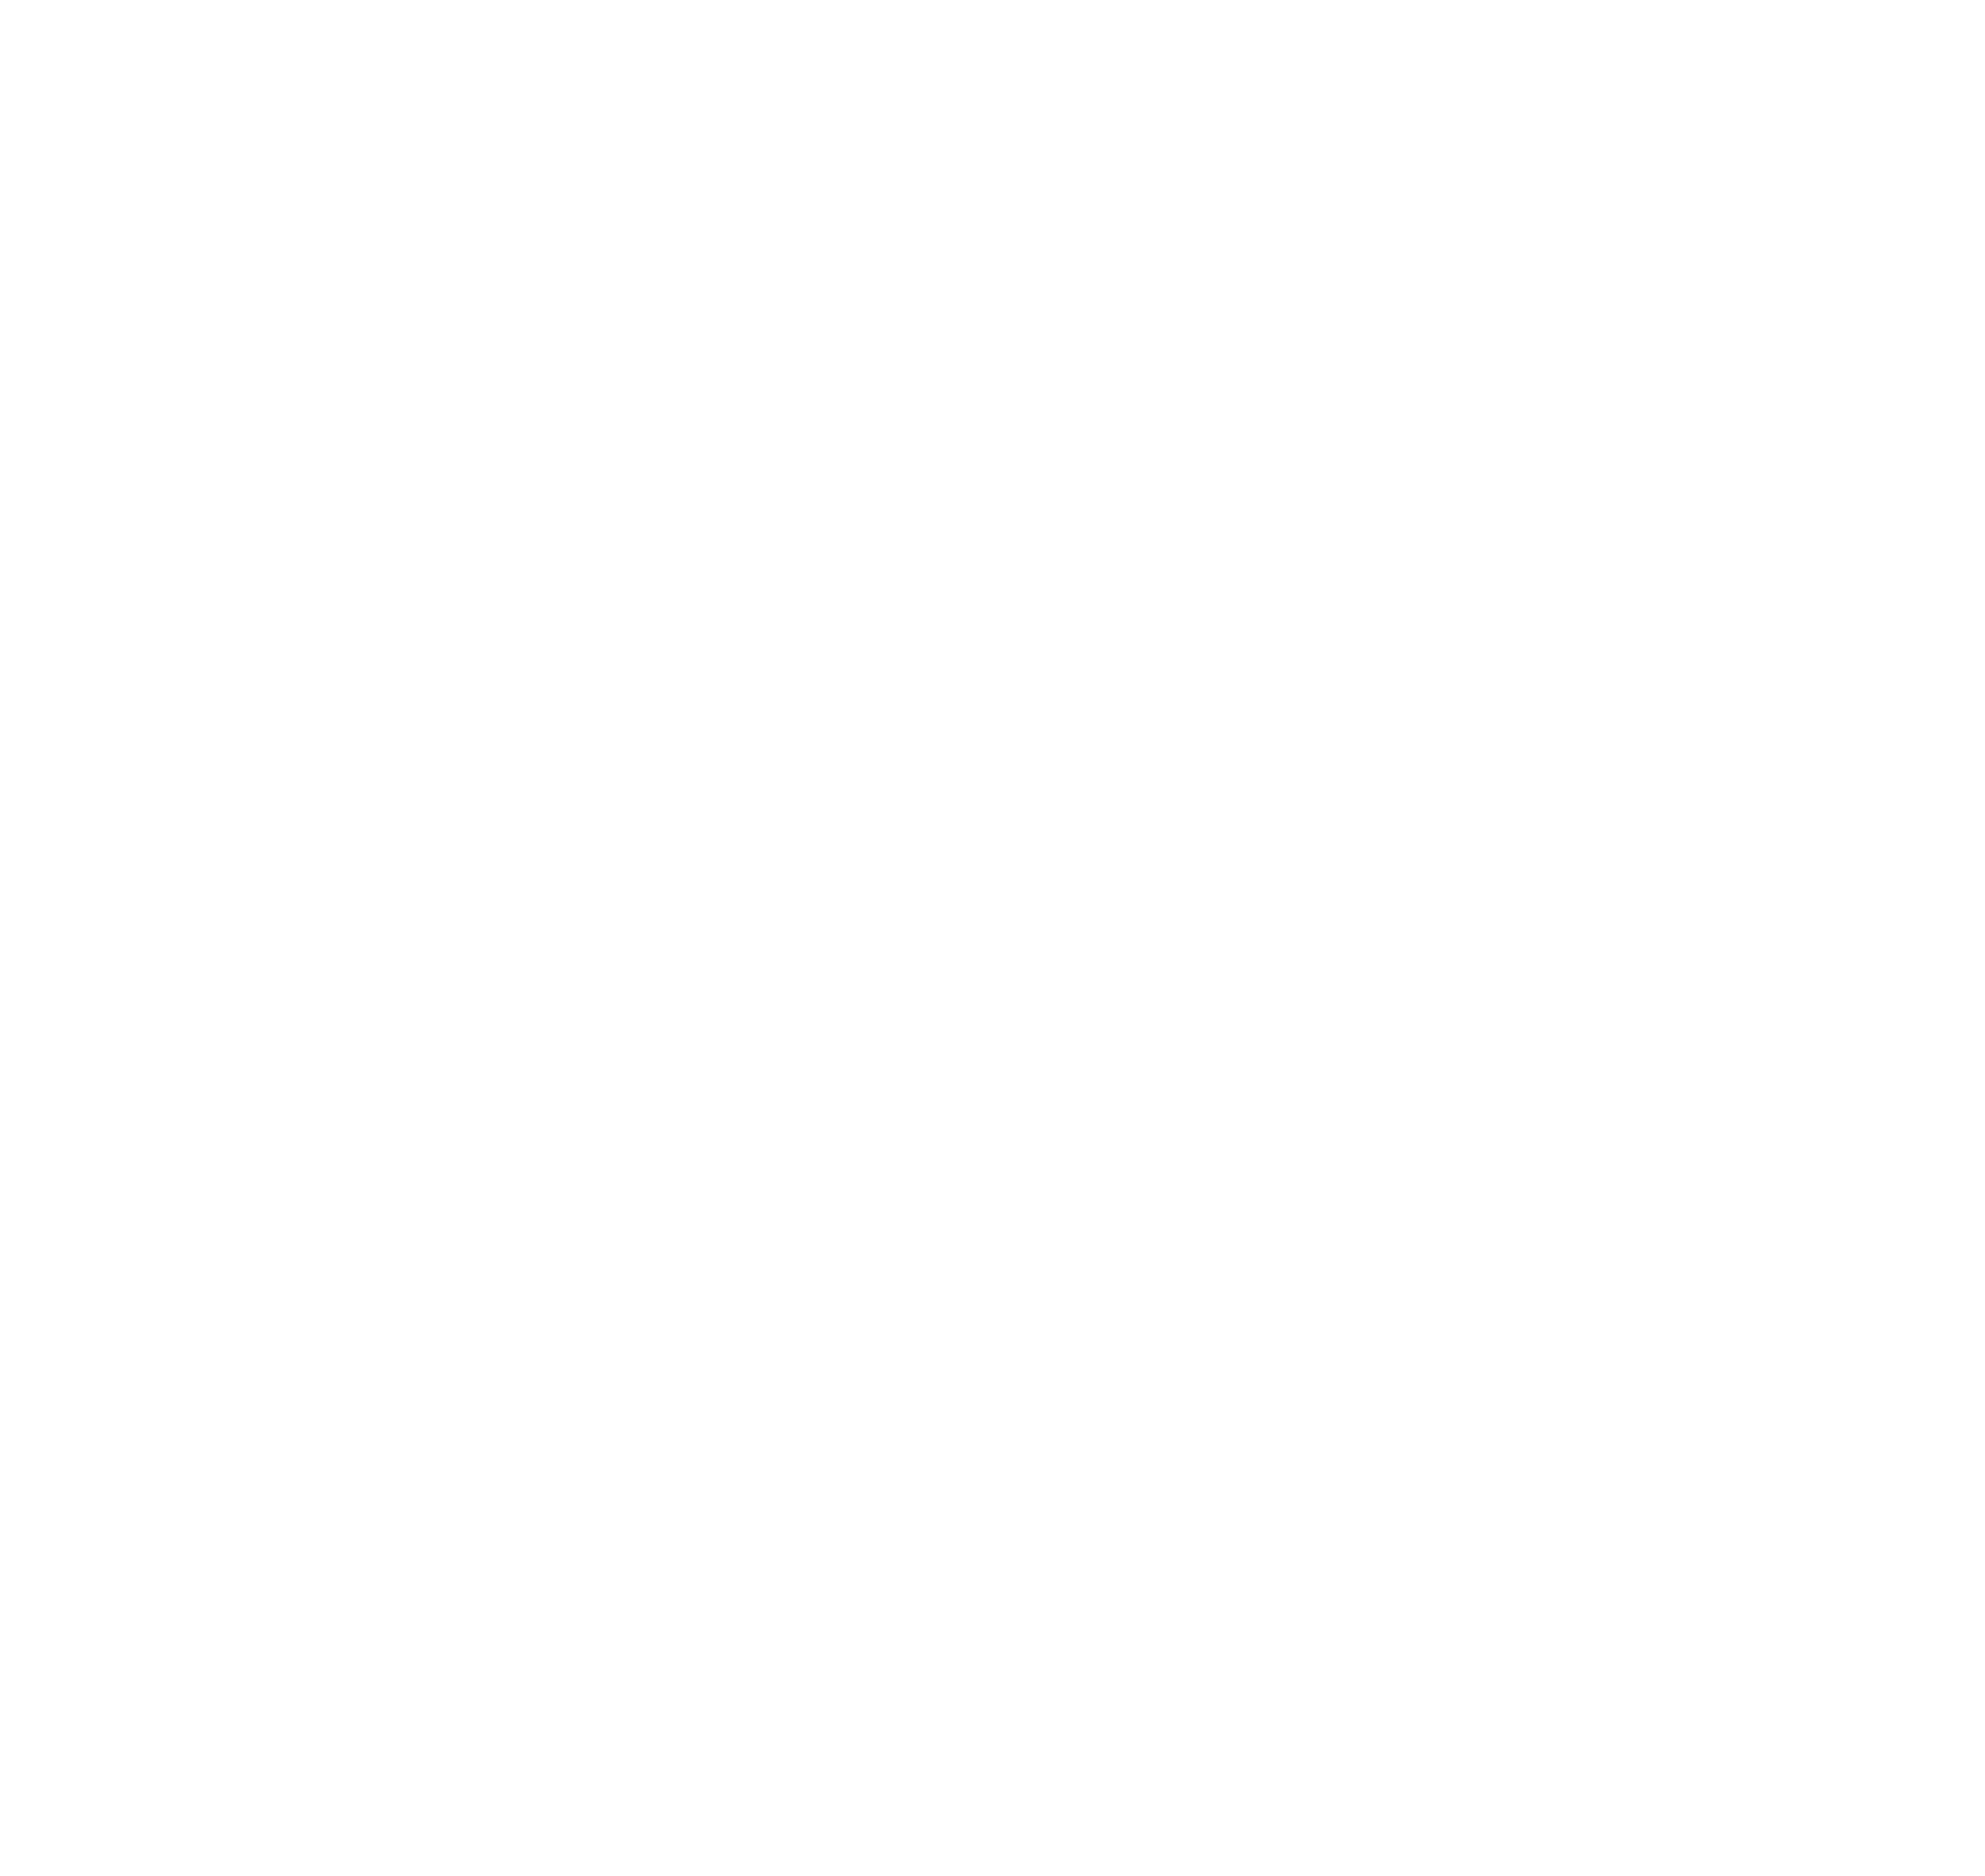 White snowflake border png. Transparent hanging snowflakes clipart